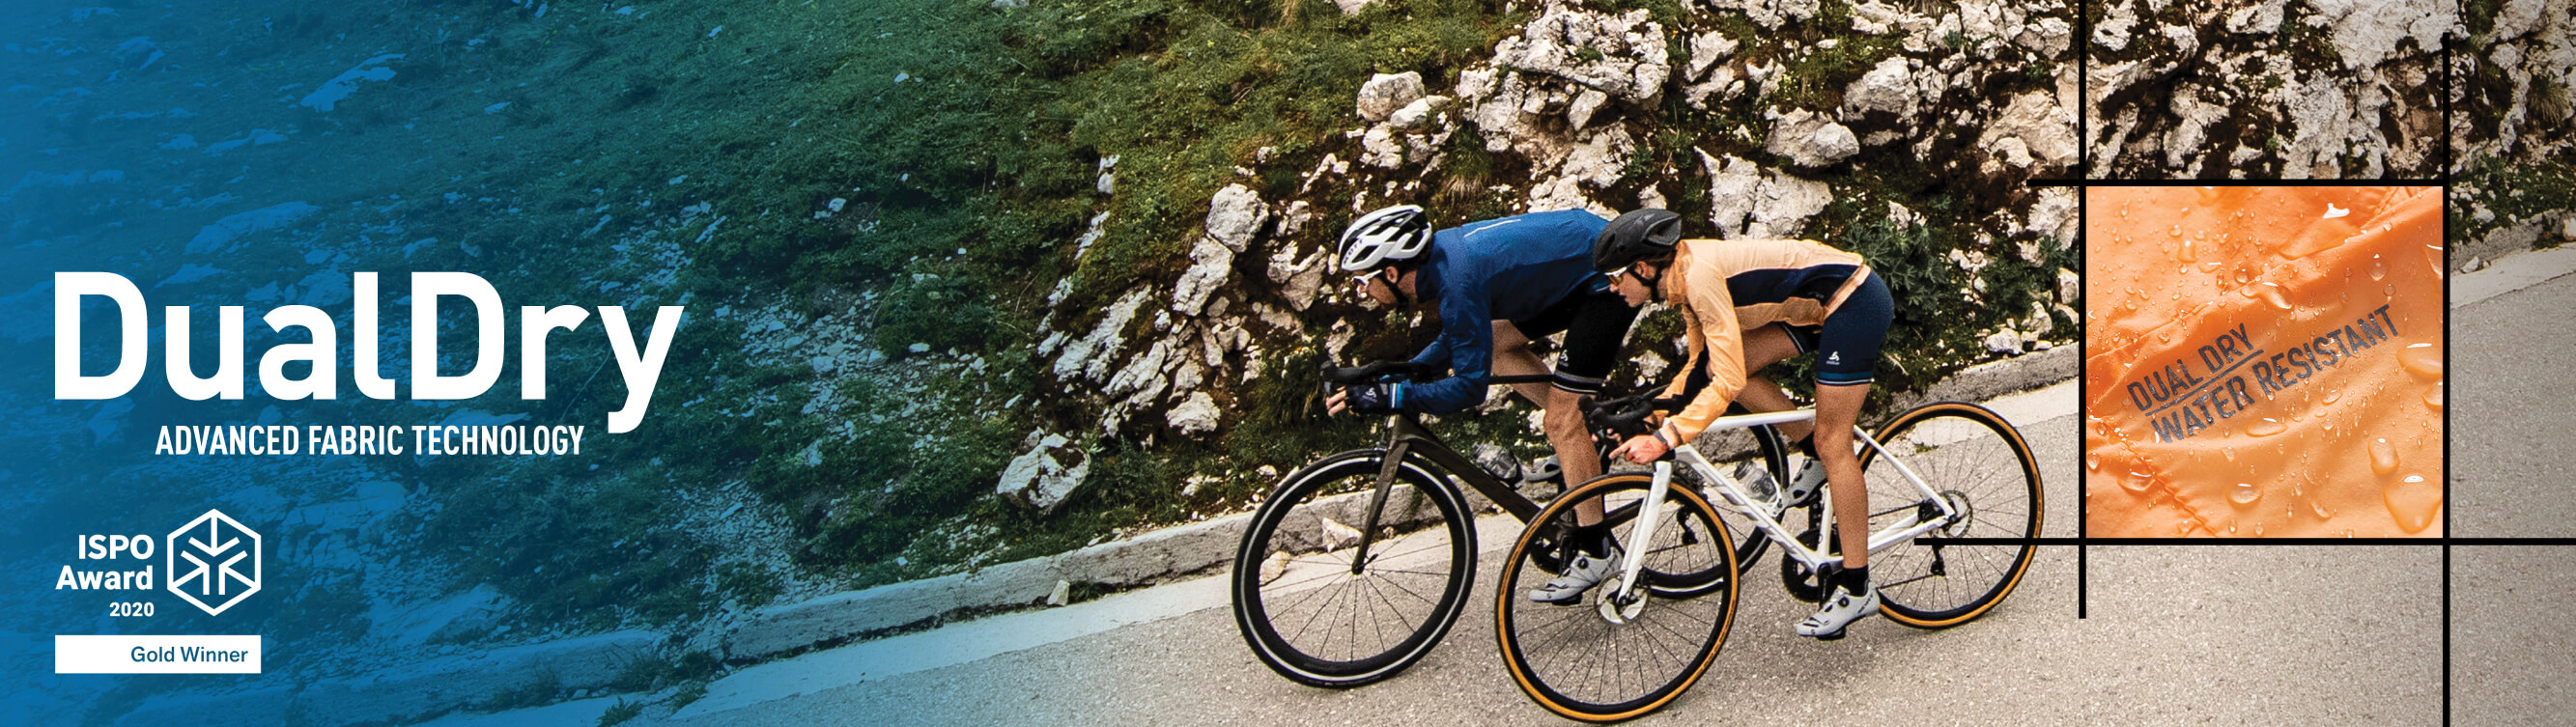 ODLO ISPO Awarded New Technology DualDry Waterproof and Water Resistant